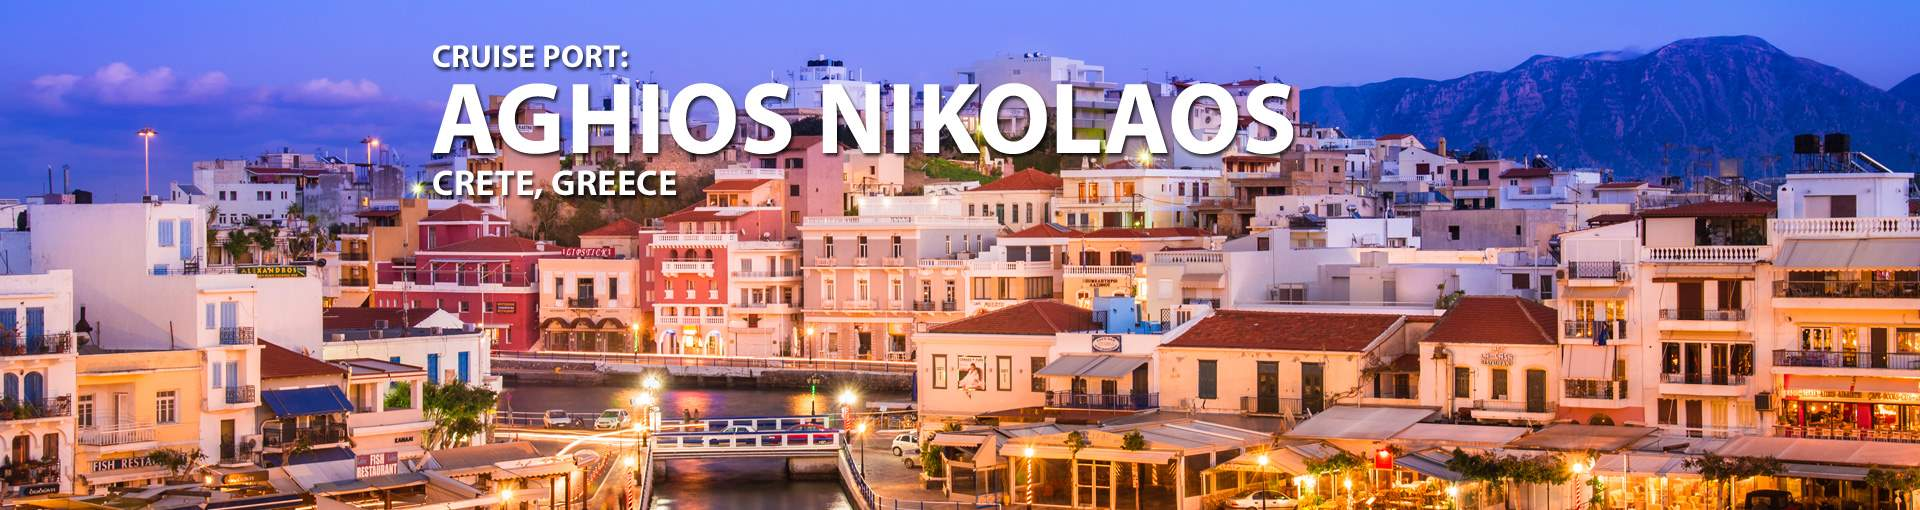 Cruises to Aghios Nikolaos, Crete, Greece